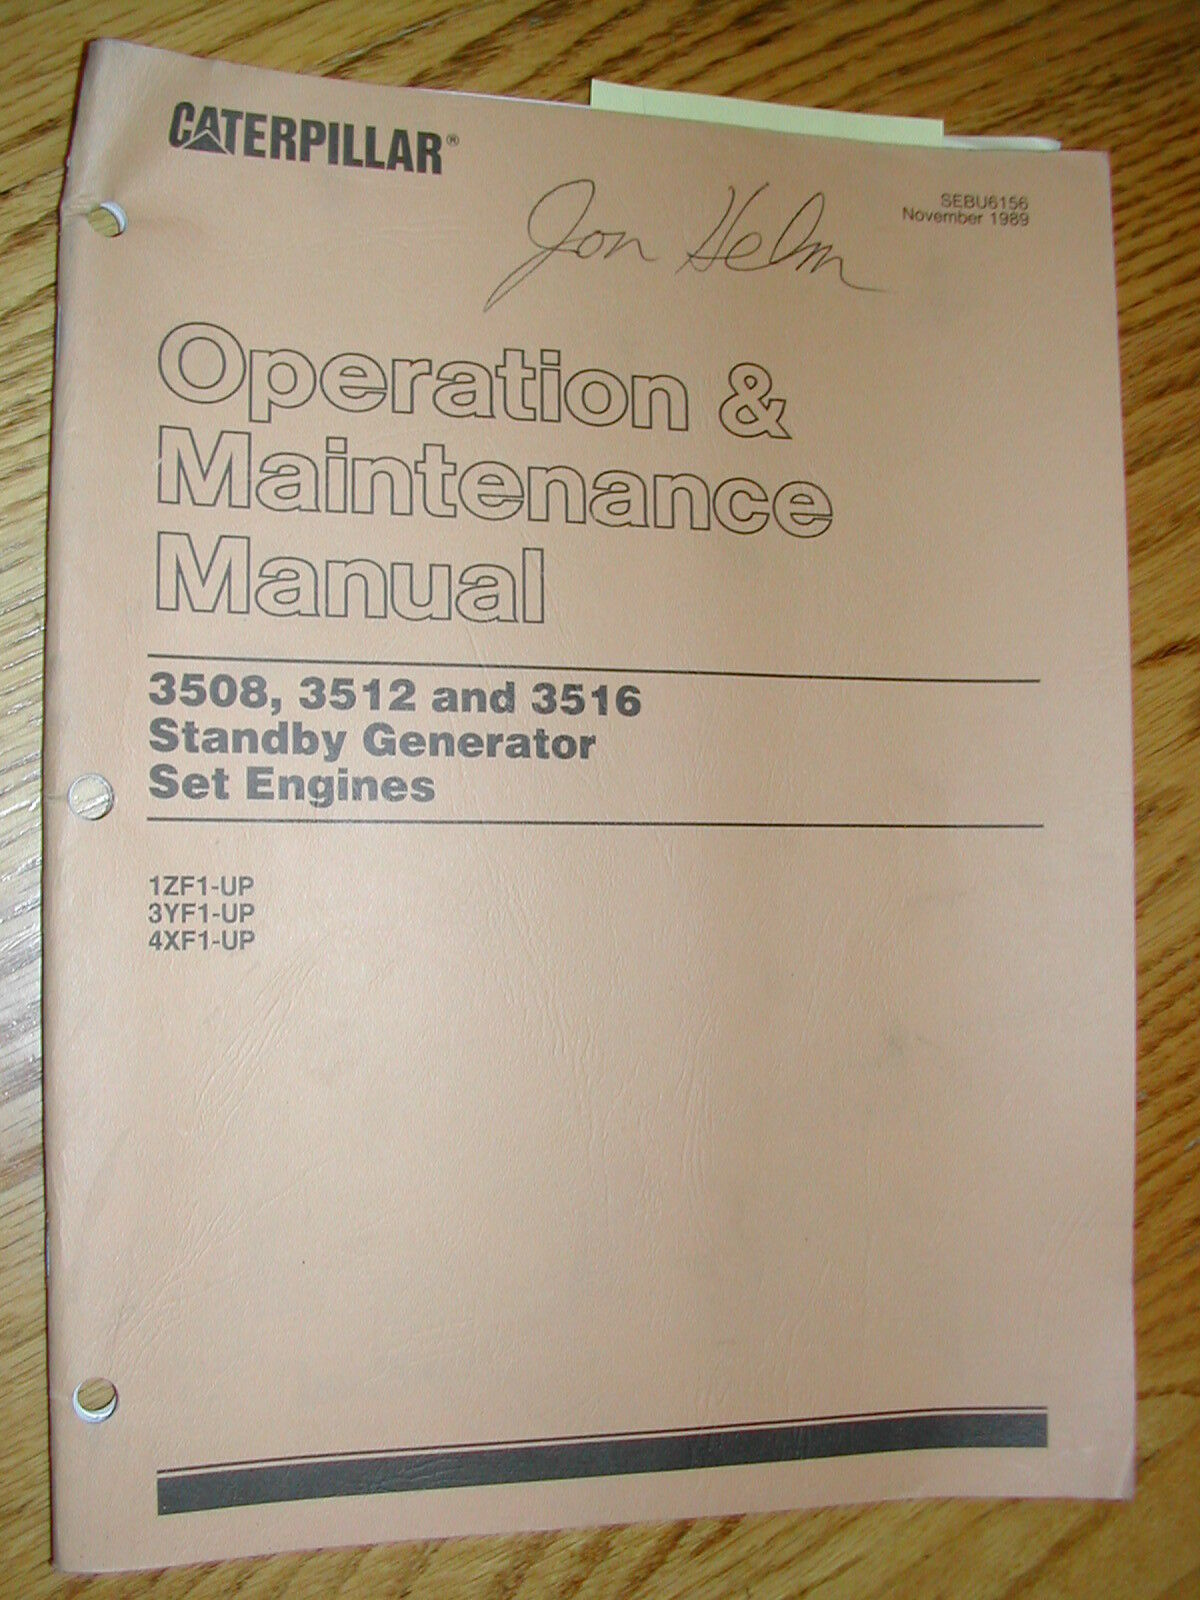 CAT Caterpillar 3508 3512 3516 Operation Maintenance Manual Genset